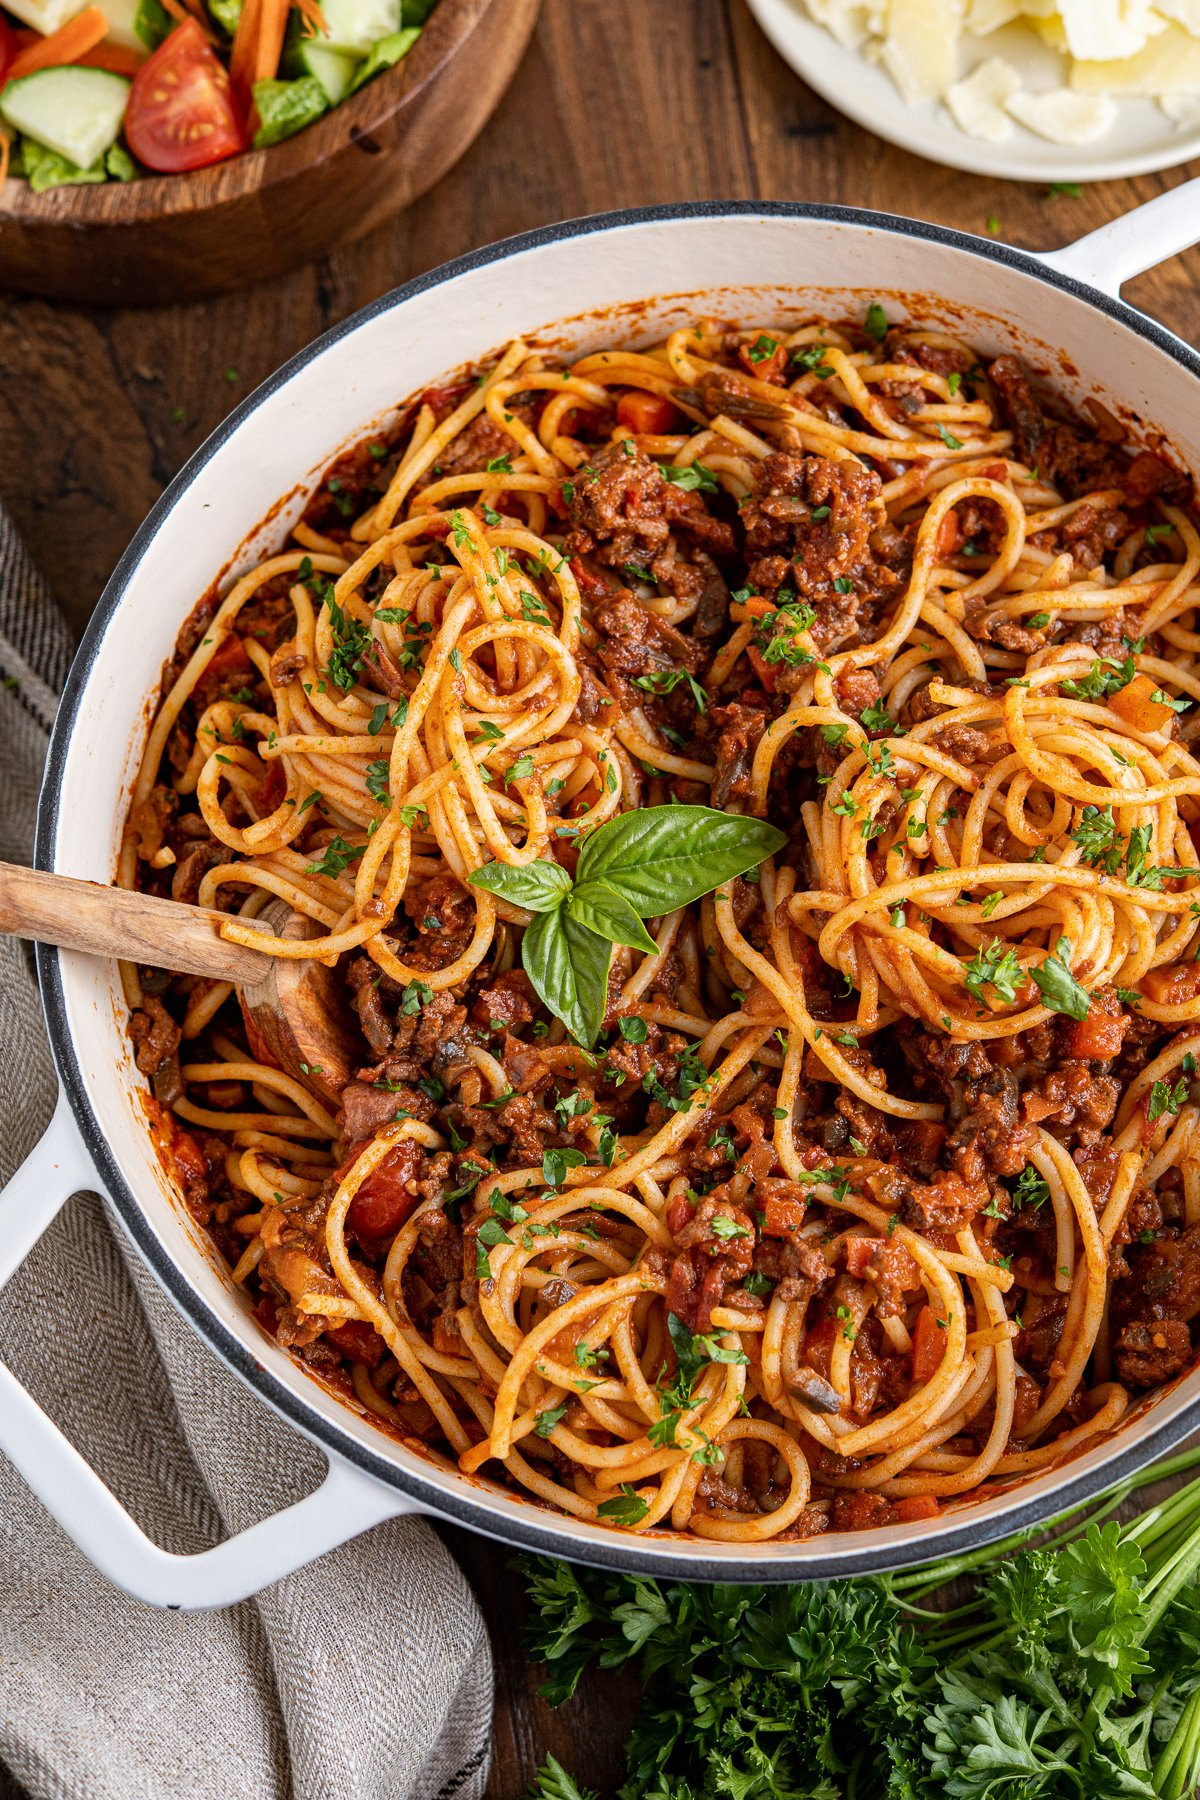 spaghetti bolognese mixed up in a white cast iron pan top with parsley and basil, bowl of salad and plate of parmesan in the background